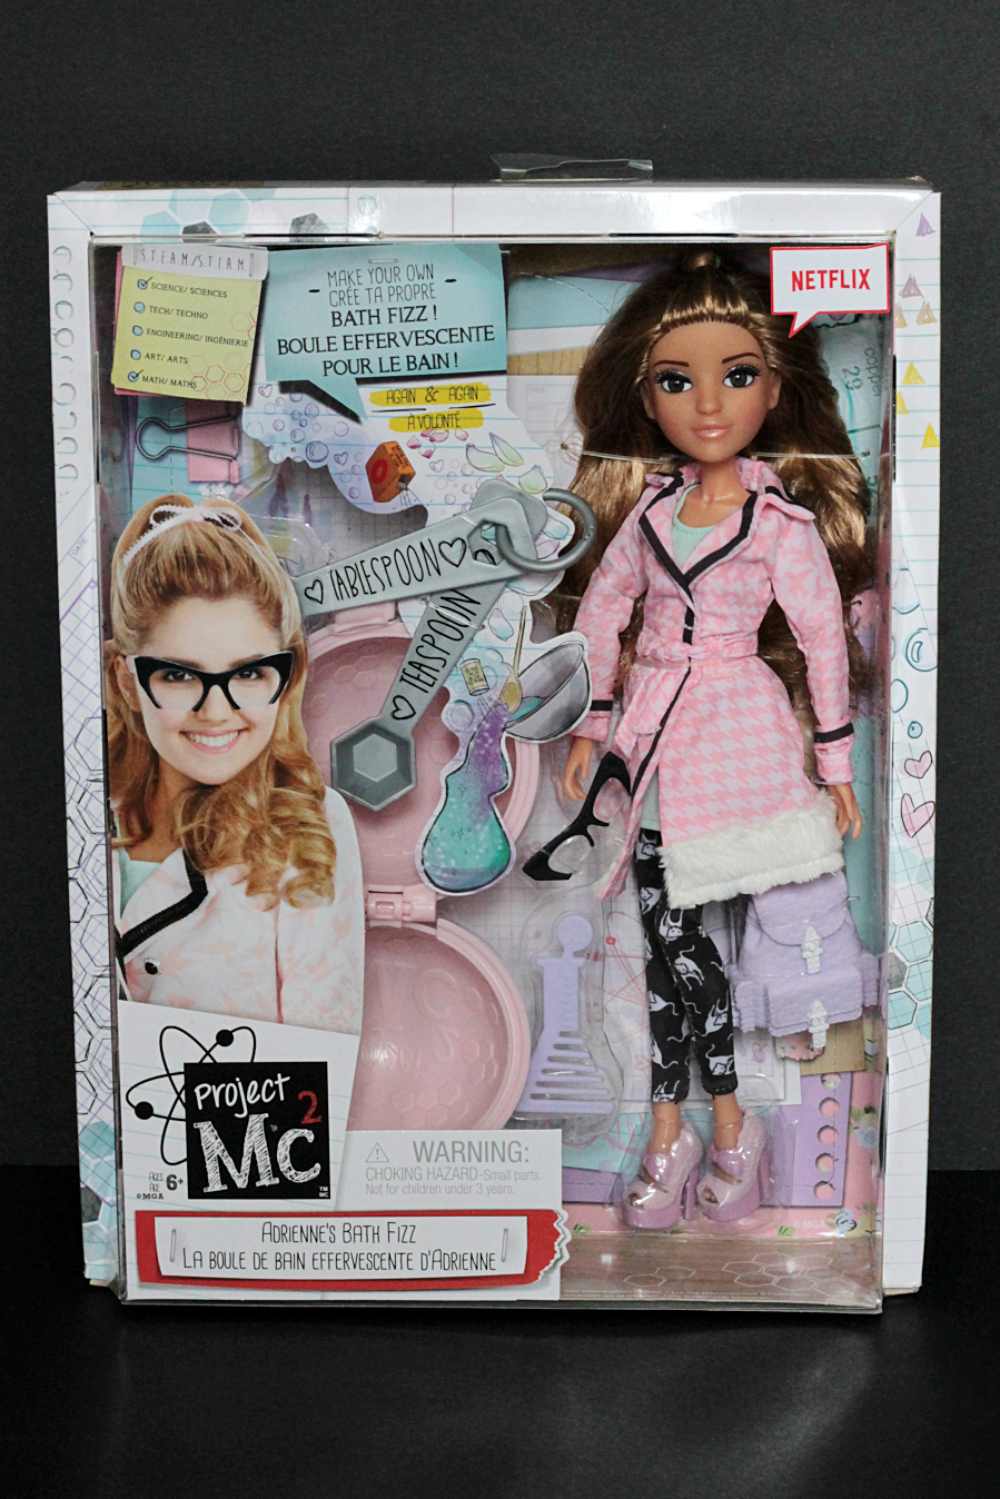 Project Mc² - Smart Is The New Cool! Adriennes Bath Fizz